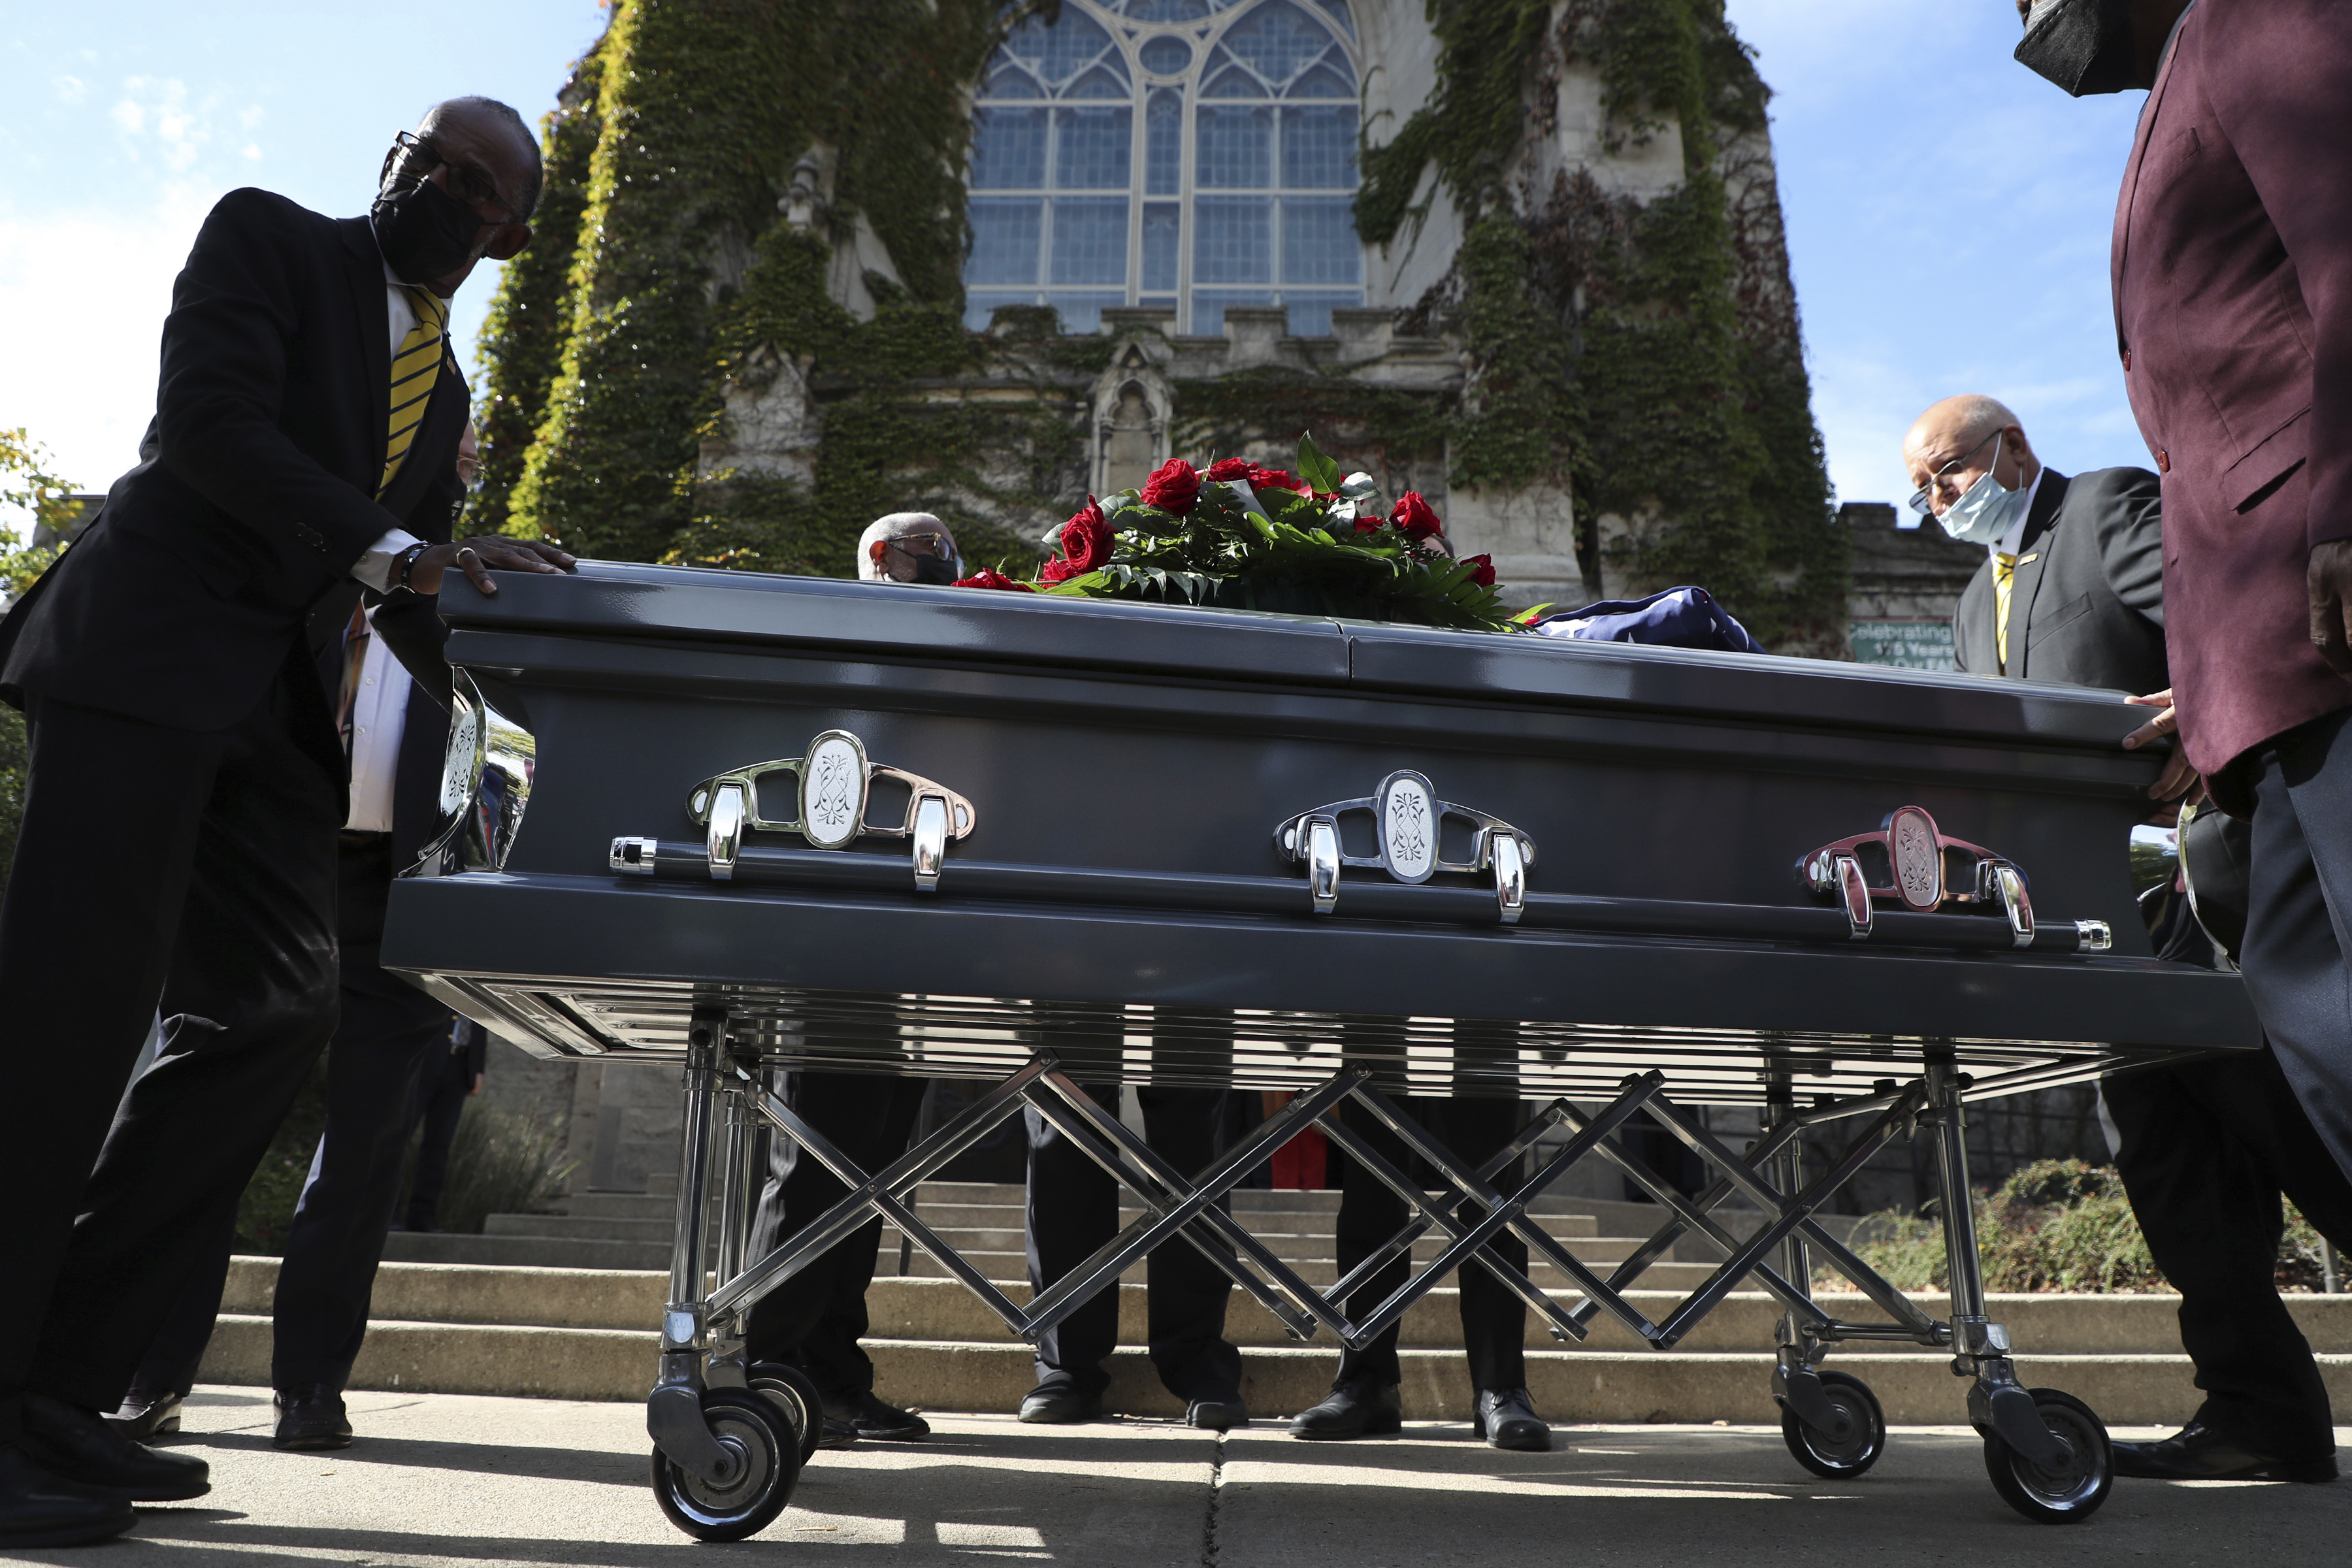 The casket bearing the remains of Timuel Black is wheeled to a hearse after funeral service at First Unitarian Church of Chicago on Friday, Oct. 22, 2021. The civil rights activist, retired Chicago professor and historian died Wednesday, Oct. 13, at the age of 102.